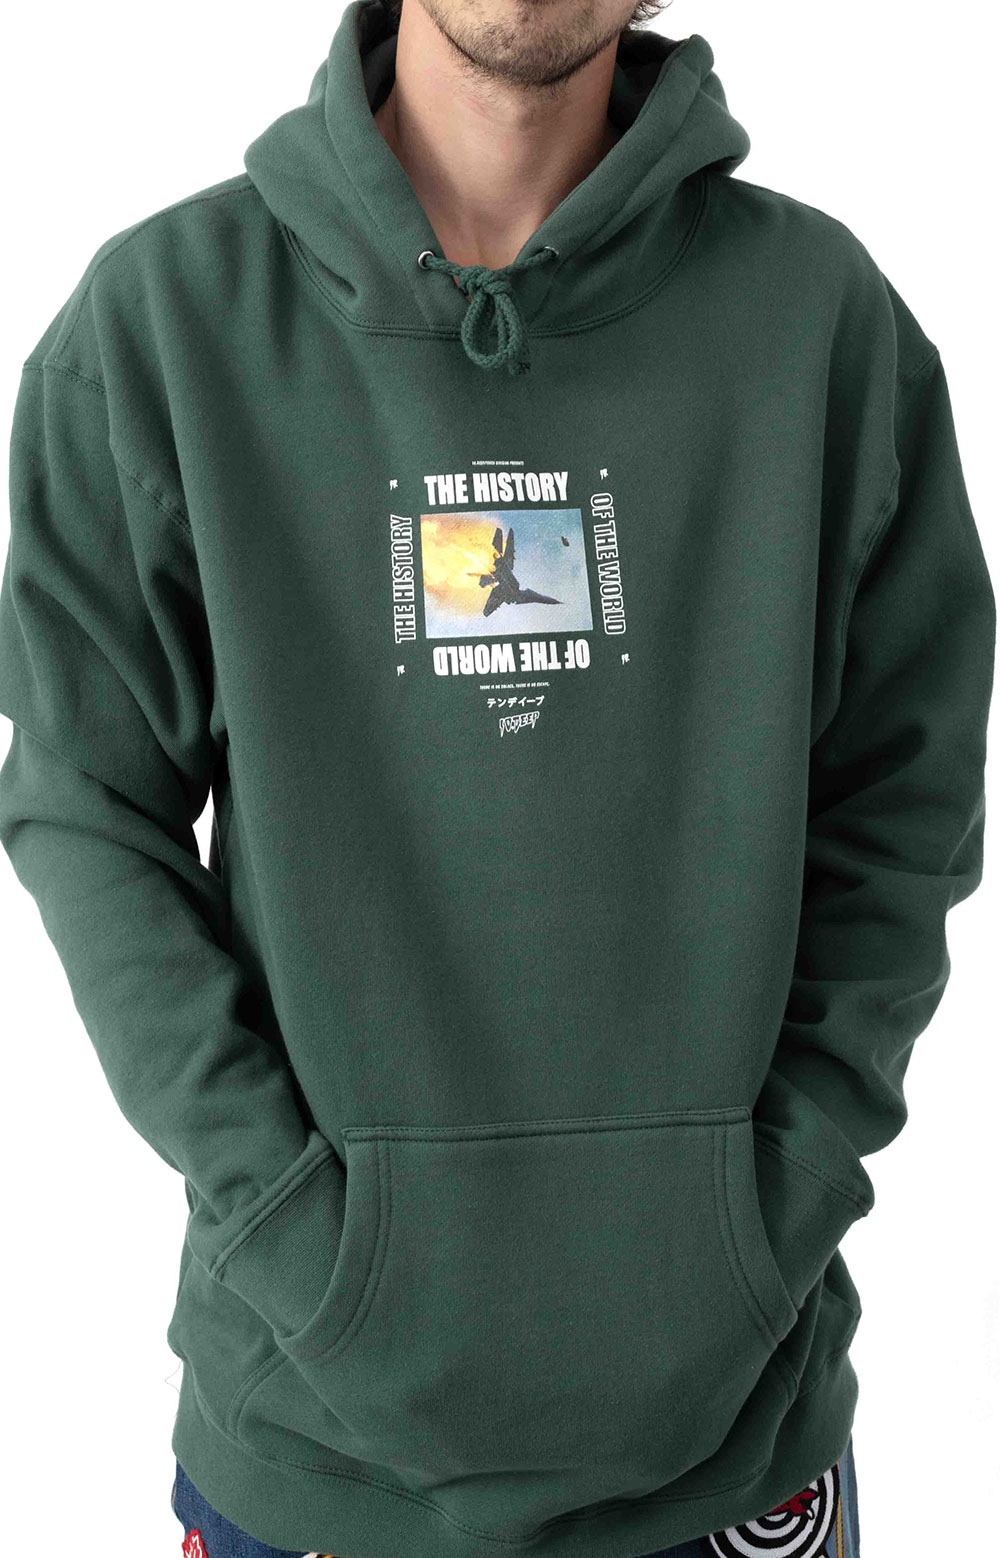 History Of The World Pullover Hoodie - Green 2